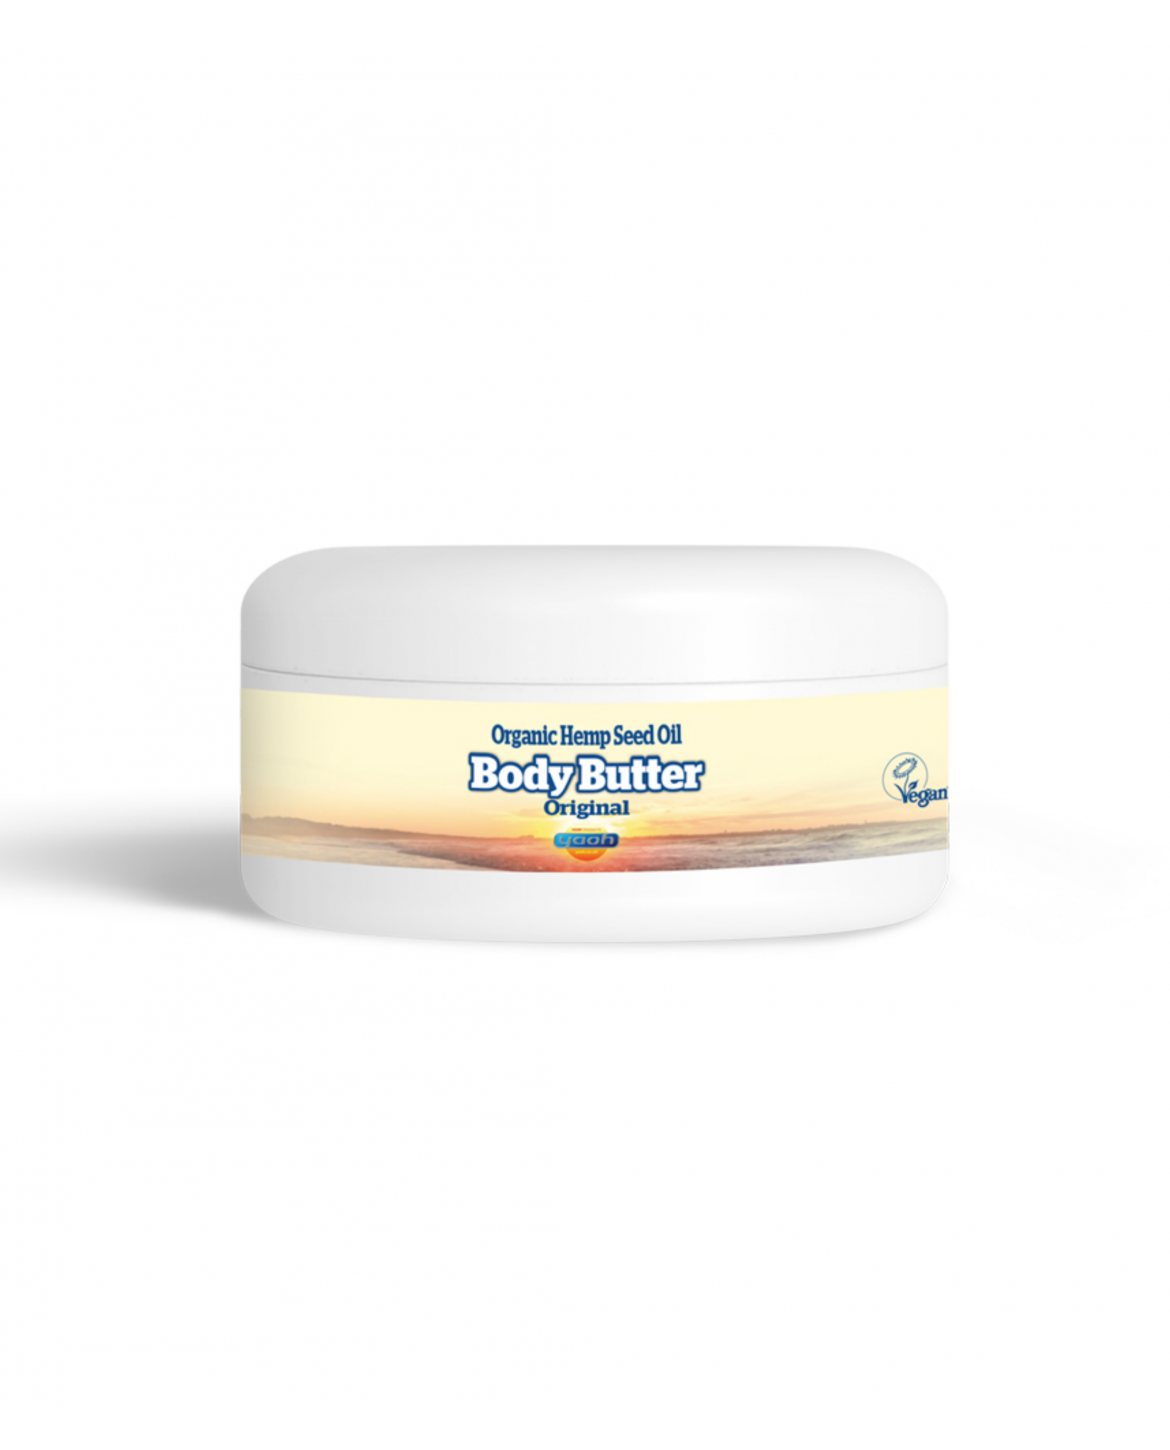 BodyButter-Original-1.png